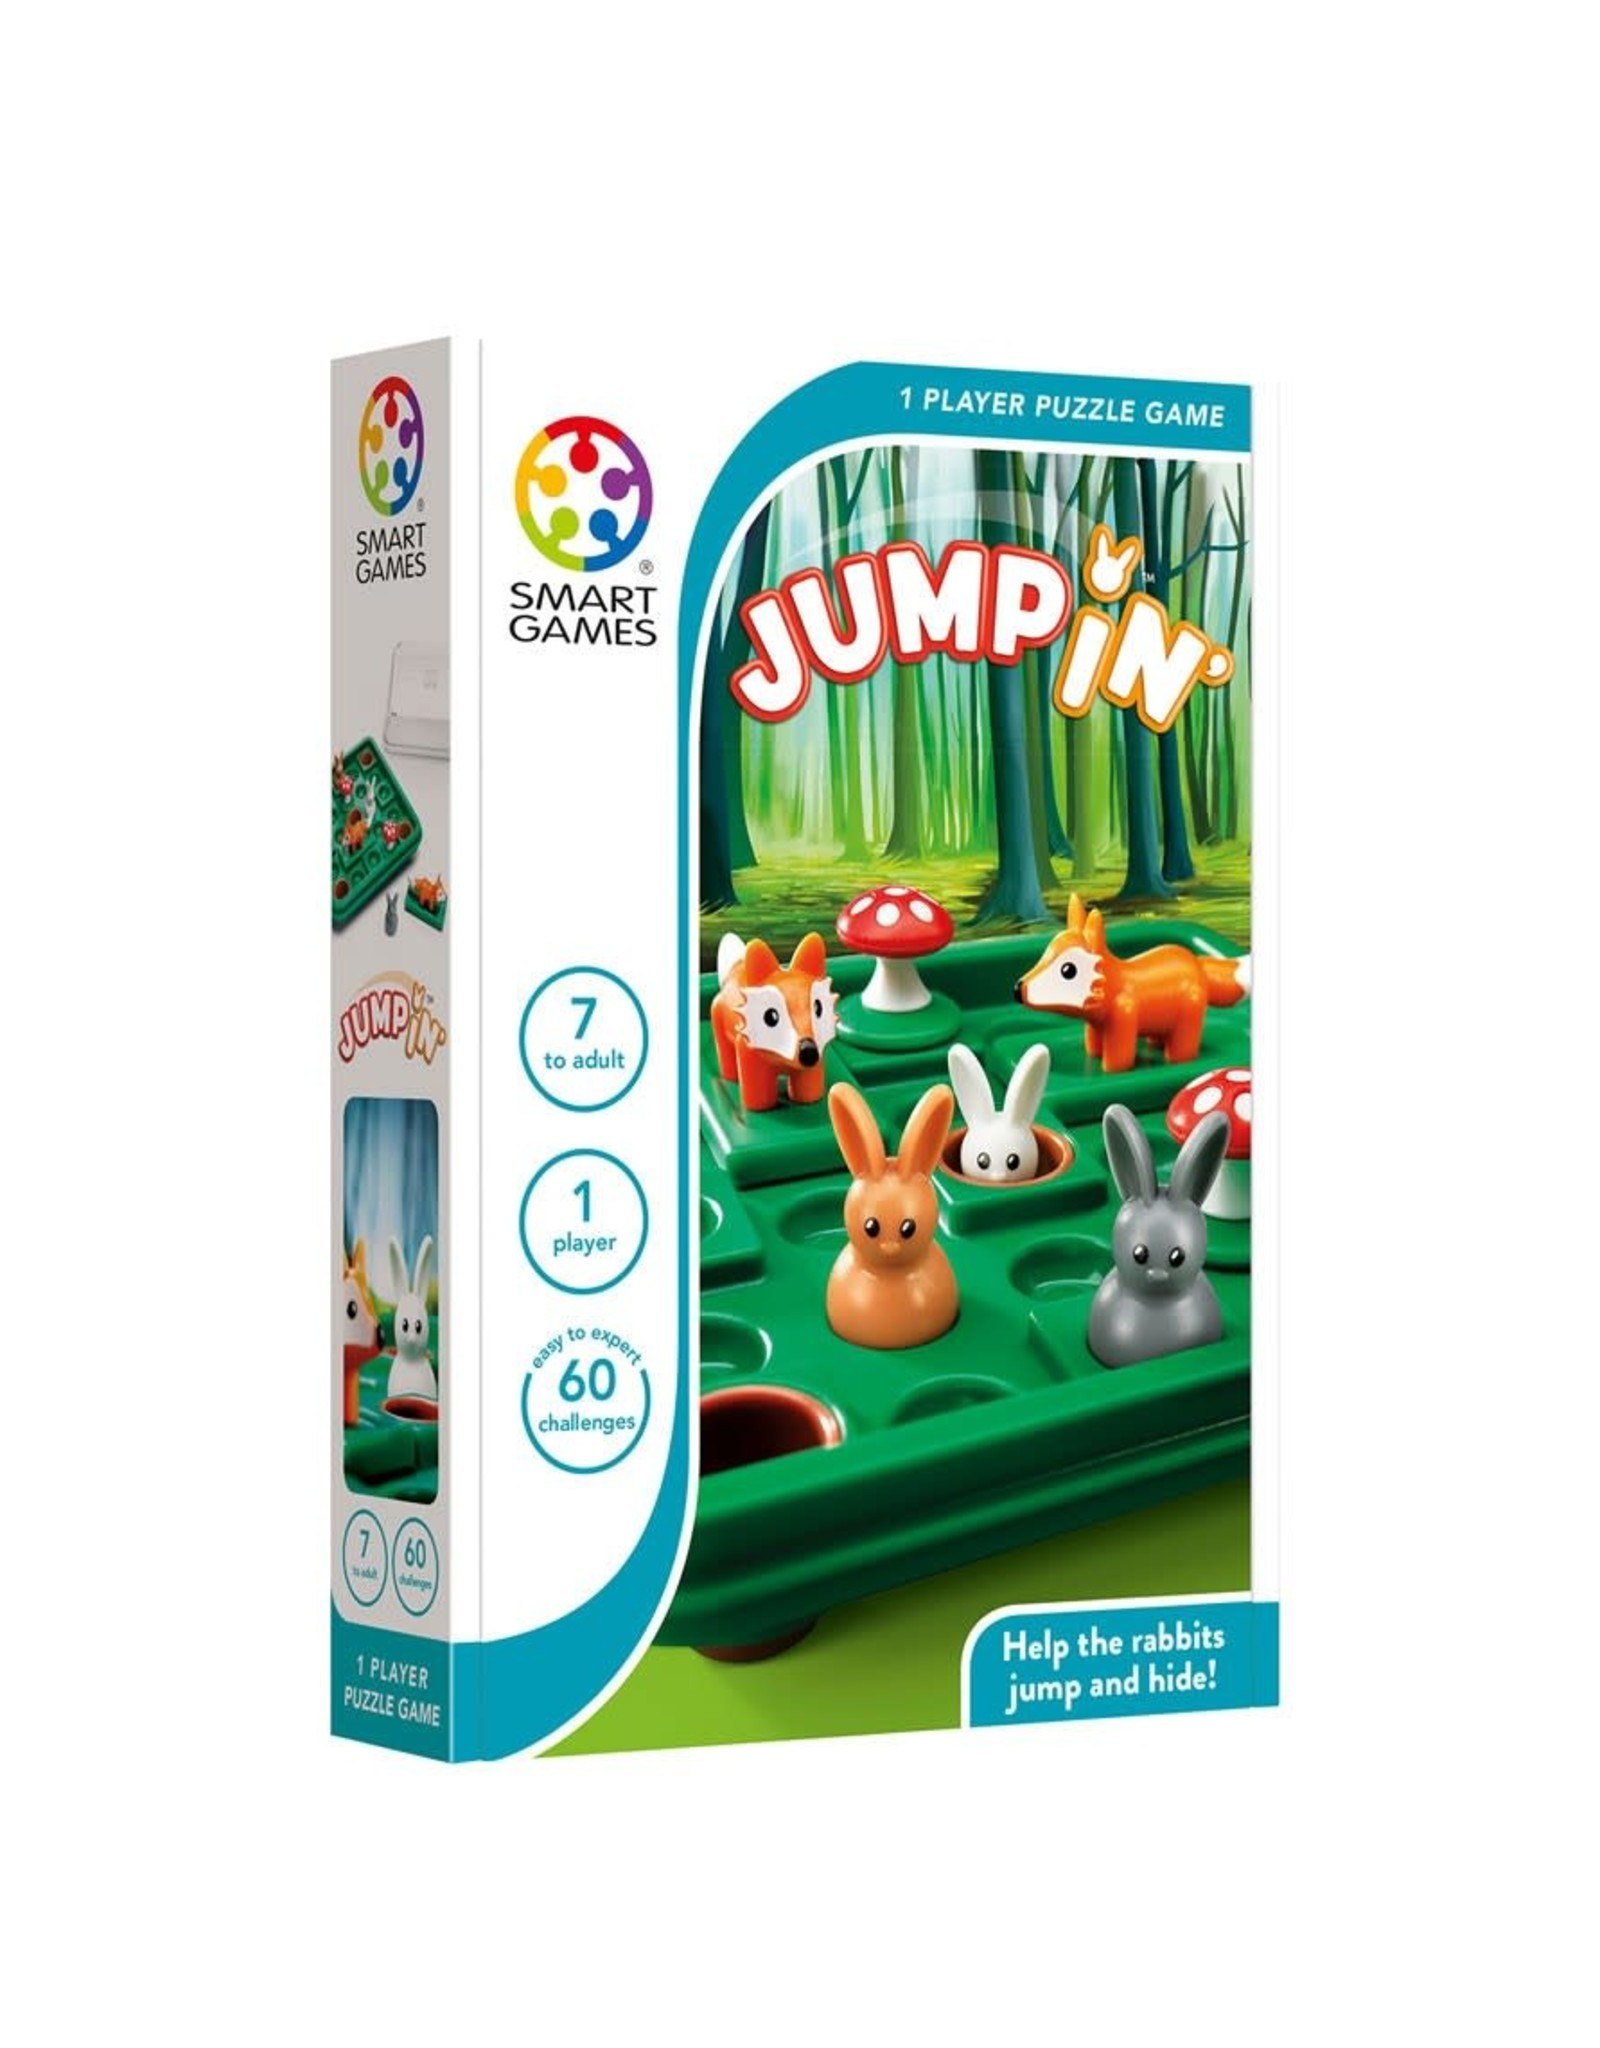 SmartGames Smart Games Compact - Jump'In